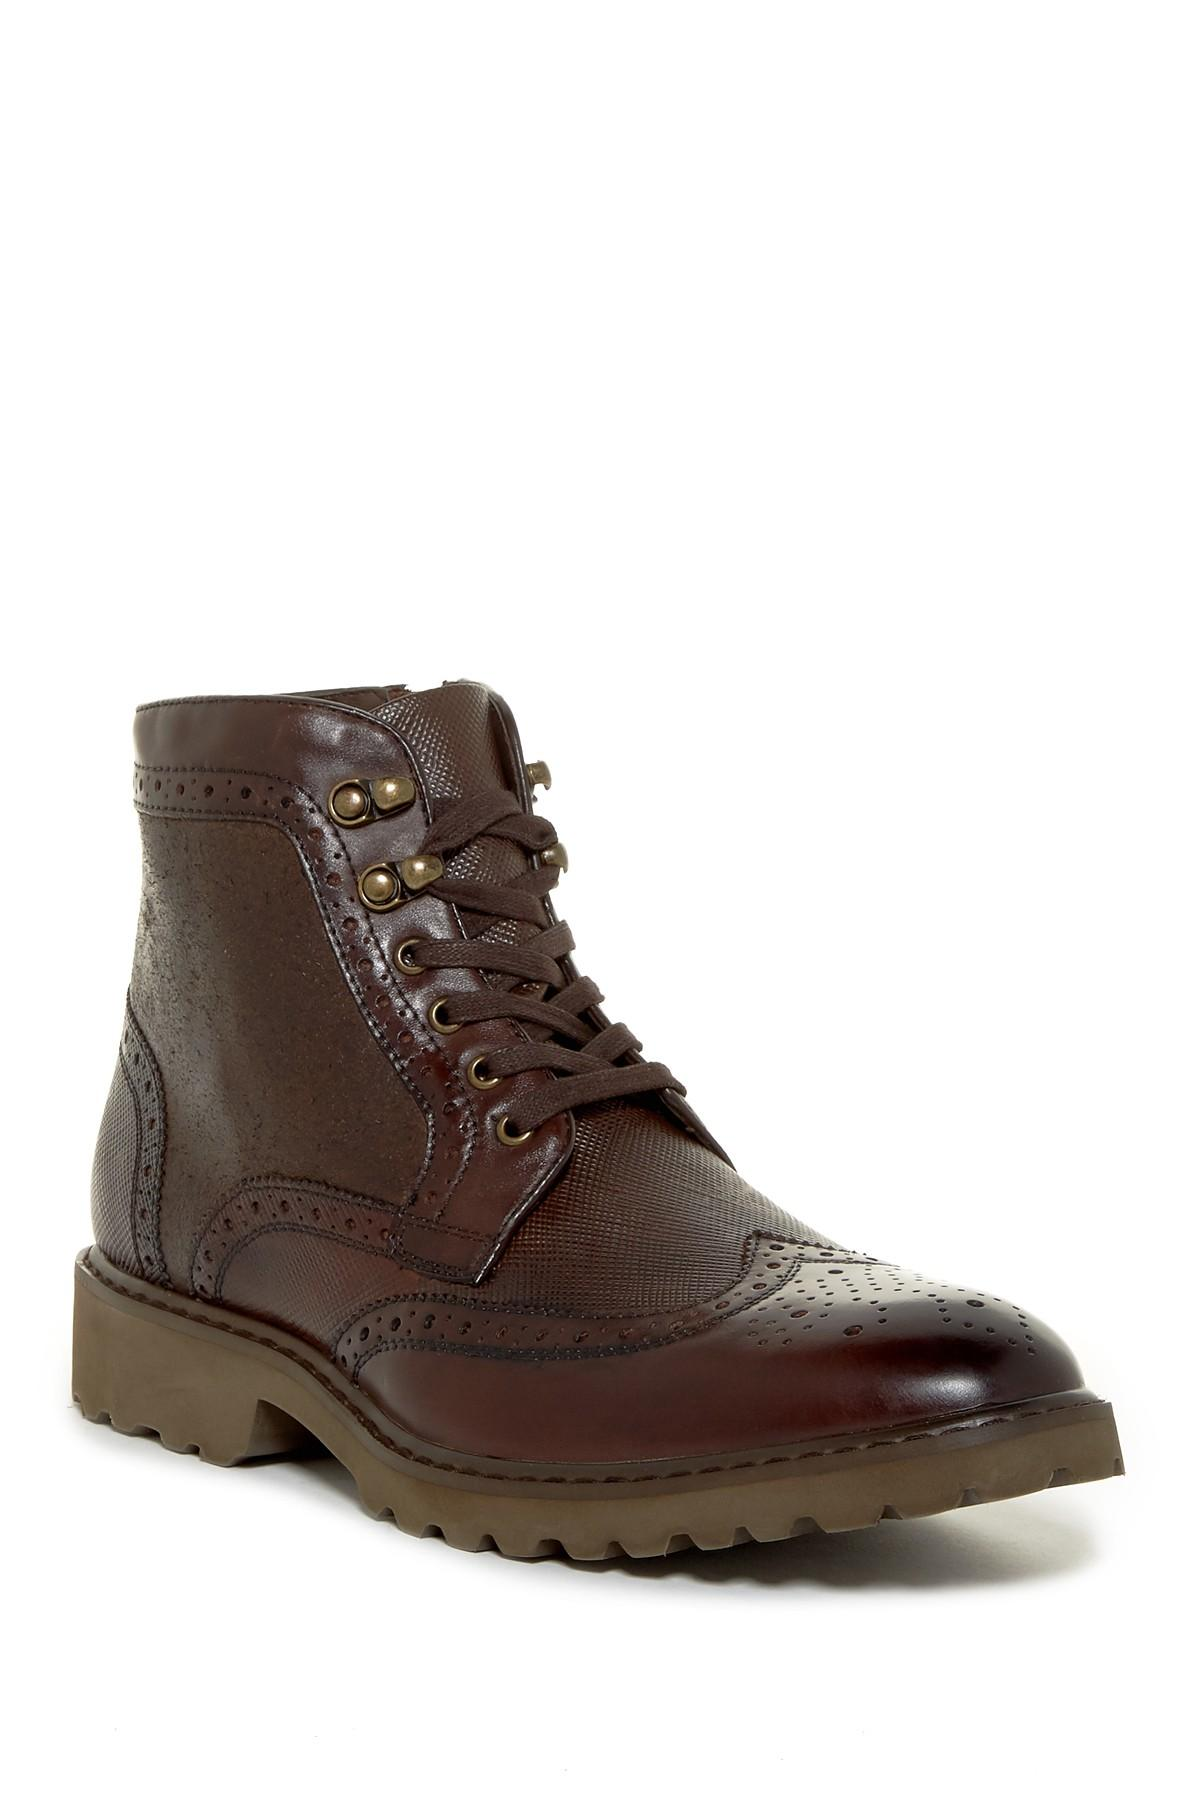 Lyst Steve Madden Morreau Lace Up Boot In Brown For Men